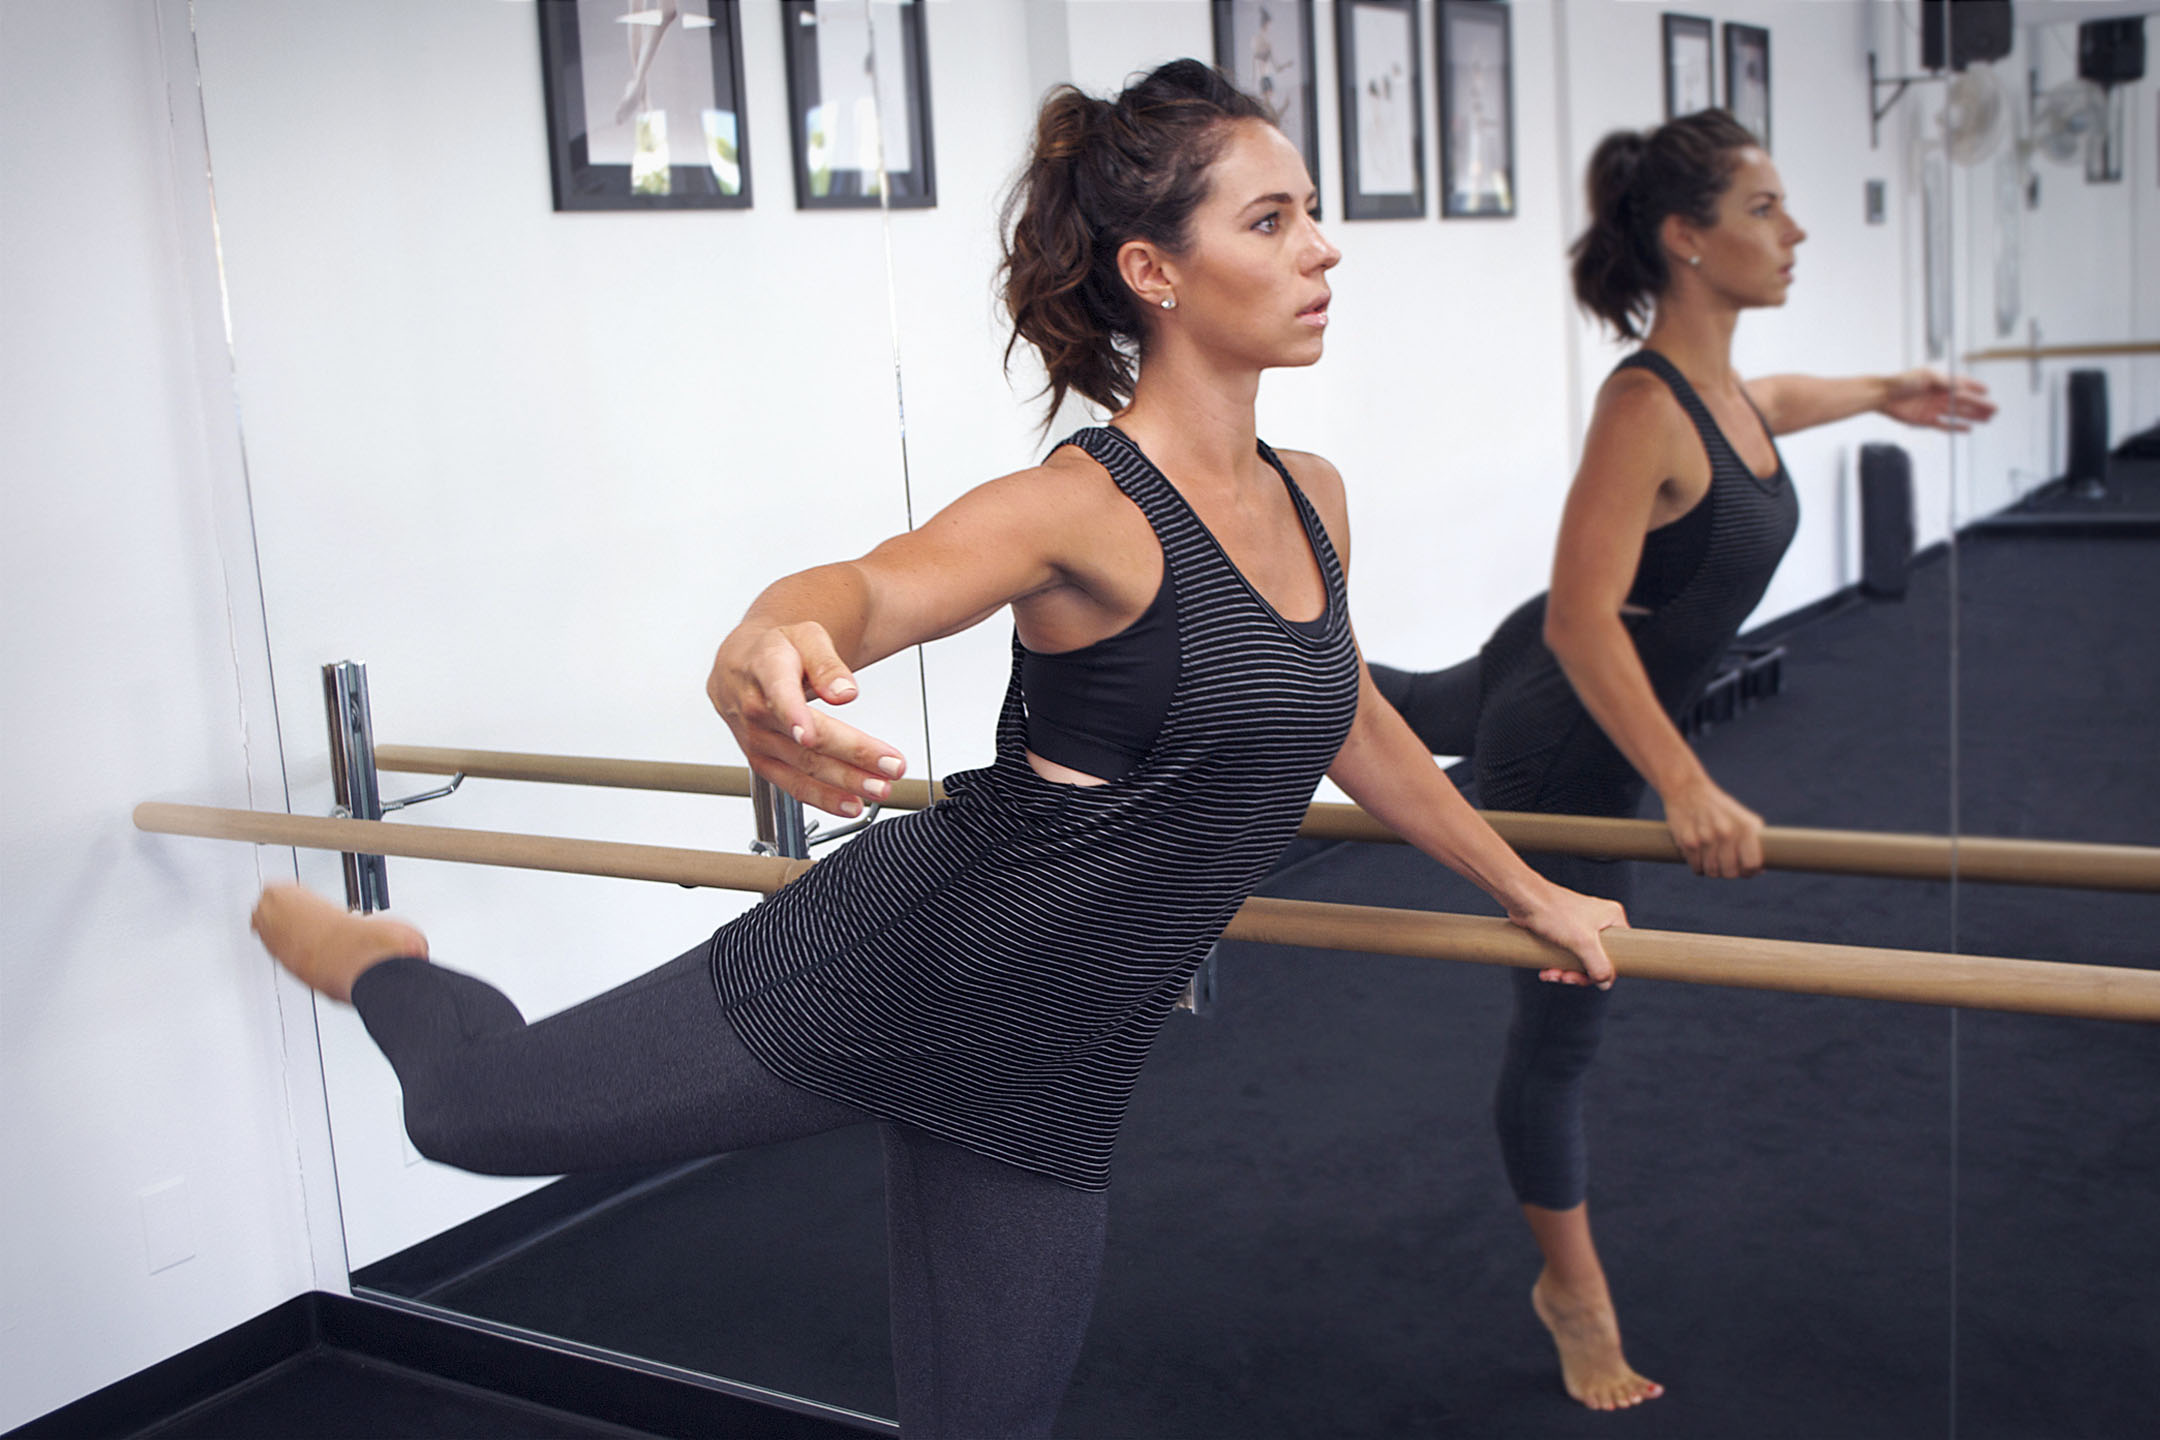 cardio barre technique